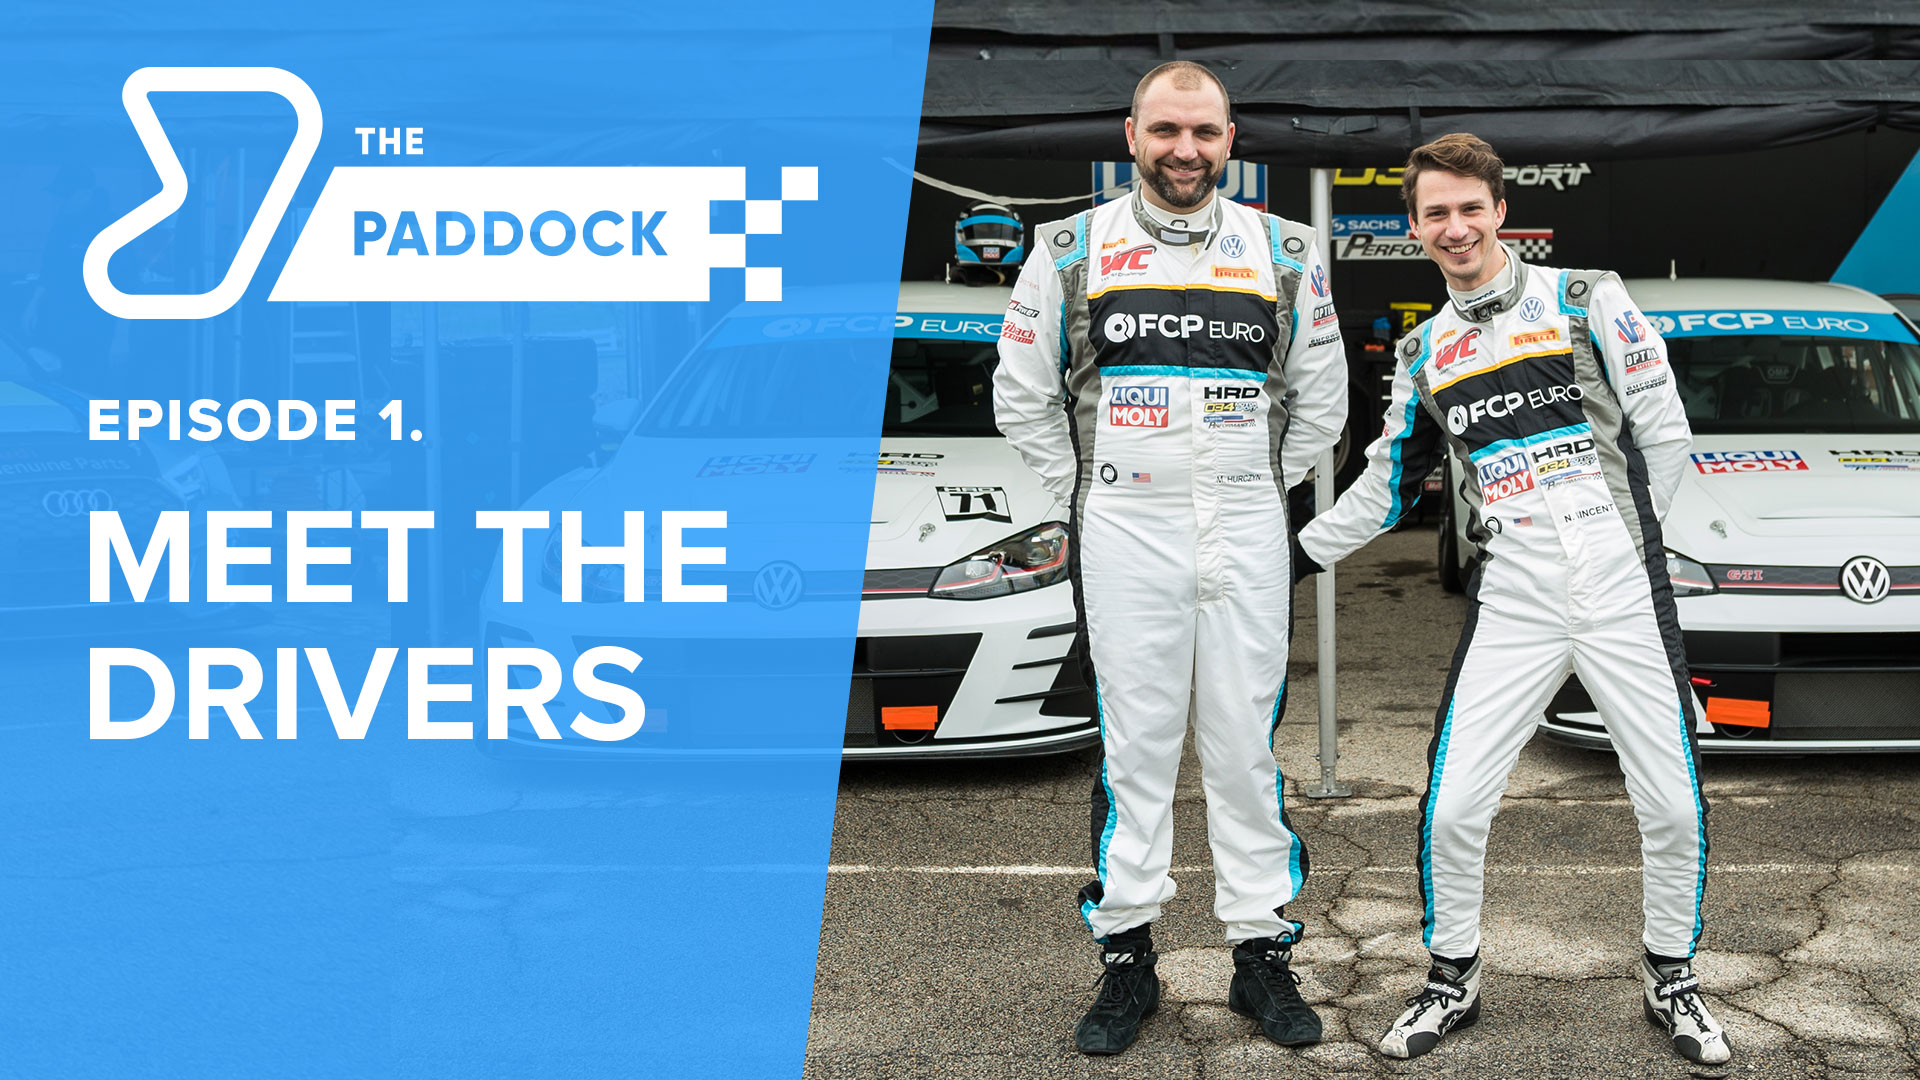 The-Paddock-EP1-Meet-the-drivers-thumbnail